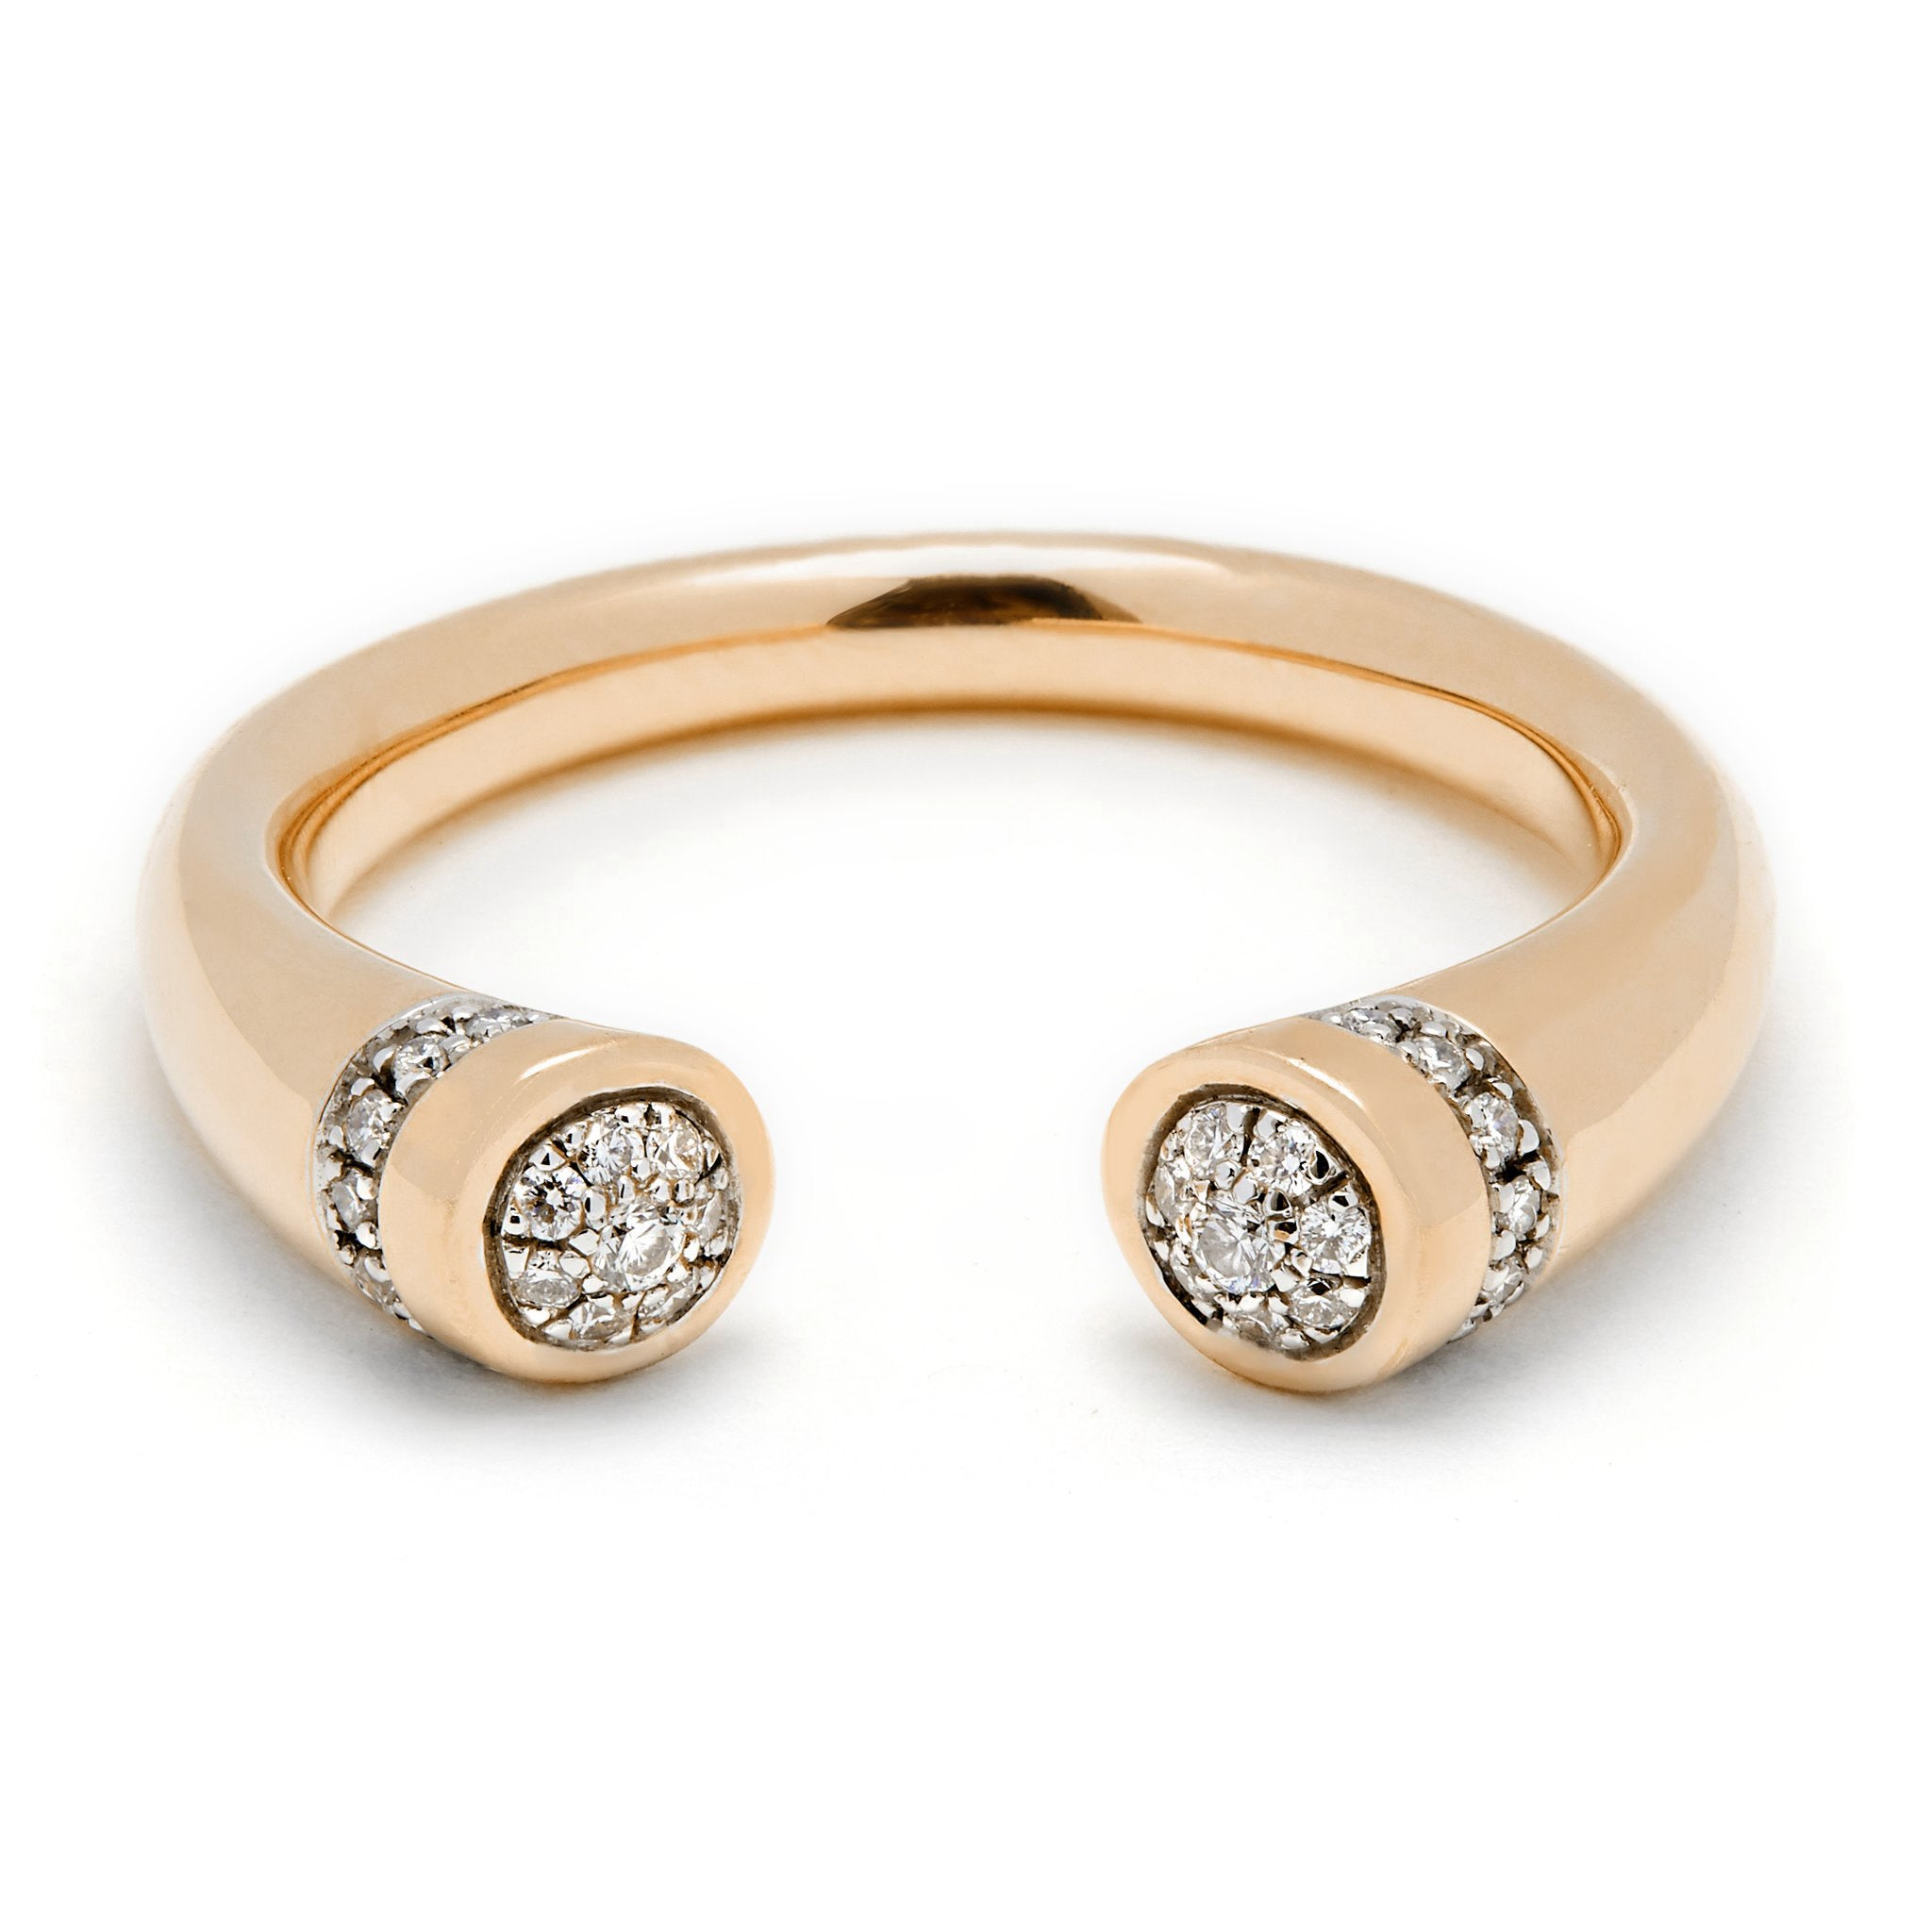 Chete Ring - Yellow Gold & Diamond